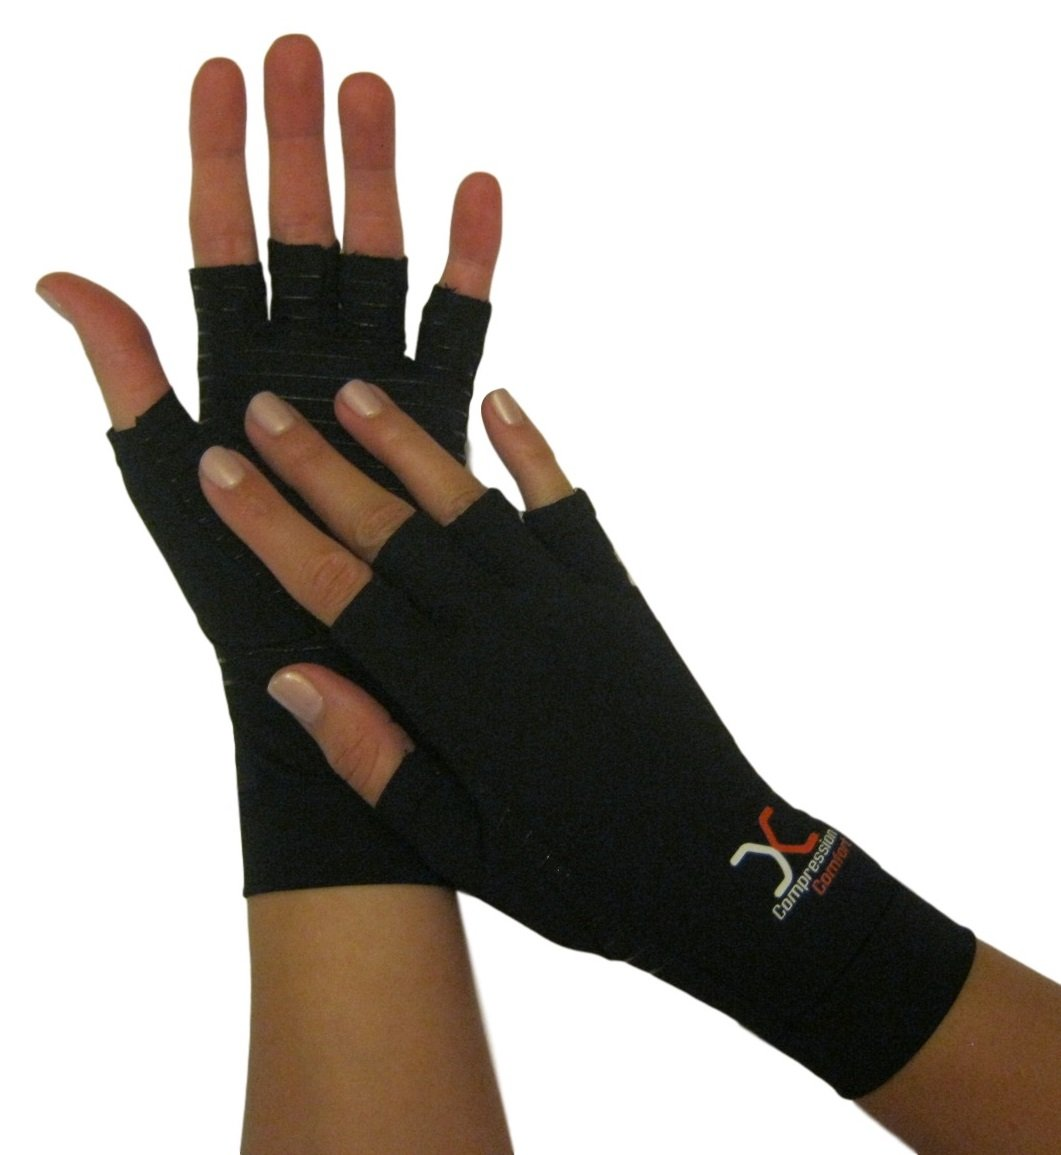 Driving gloves carpal tunnel - Amazon Com Best Compression Gloves With Copper Comfort For Carpal Tunnel Typing Support In Hands Fingers Highest Copper Percent Version 2 Pair